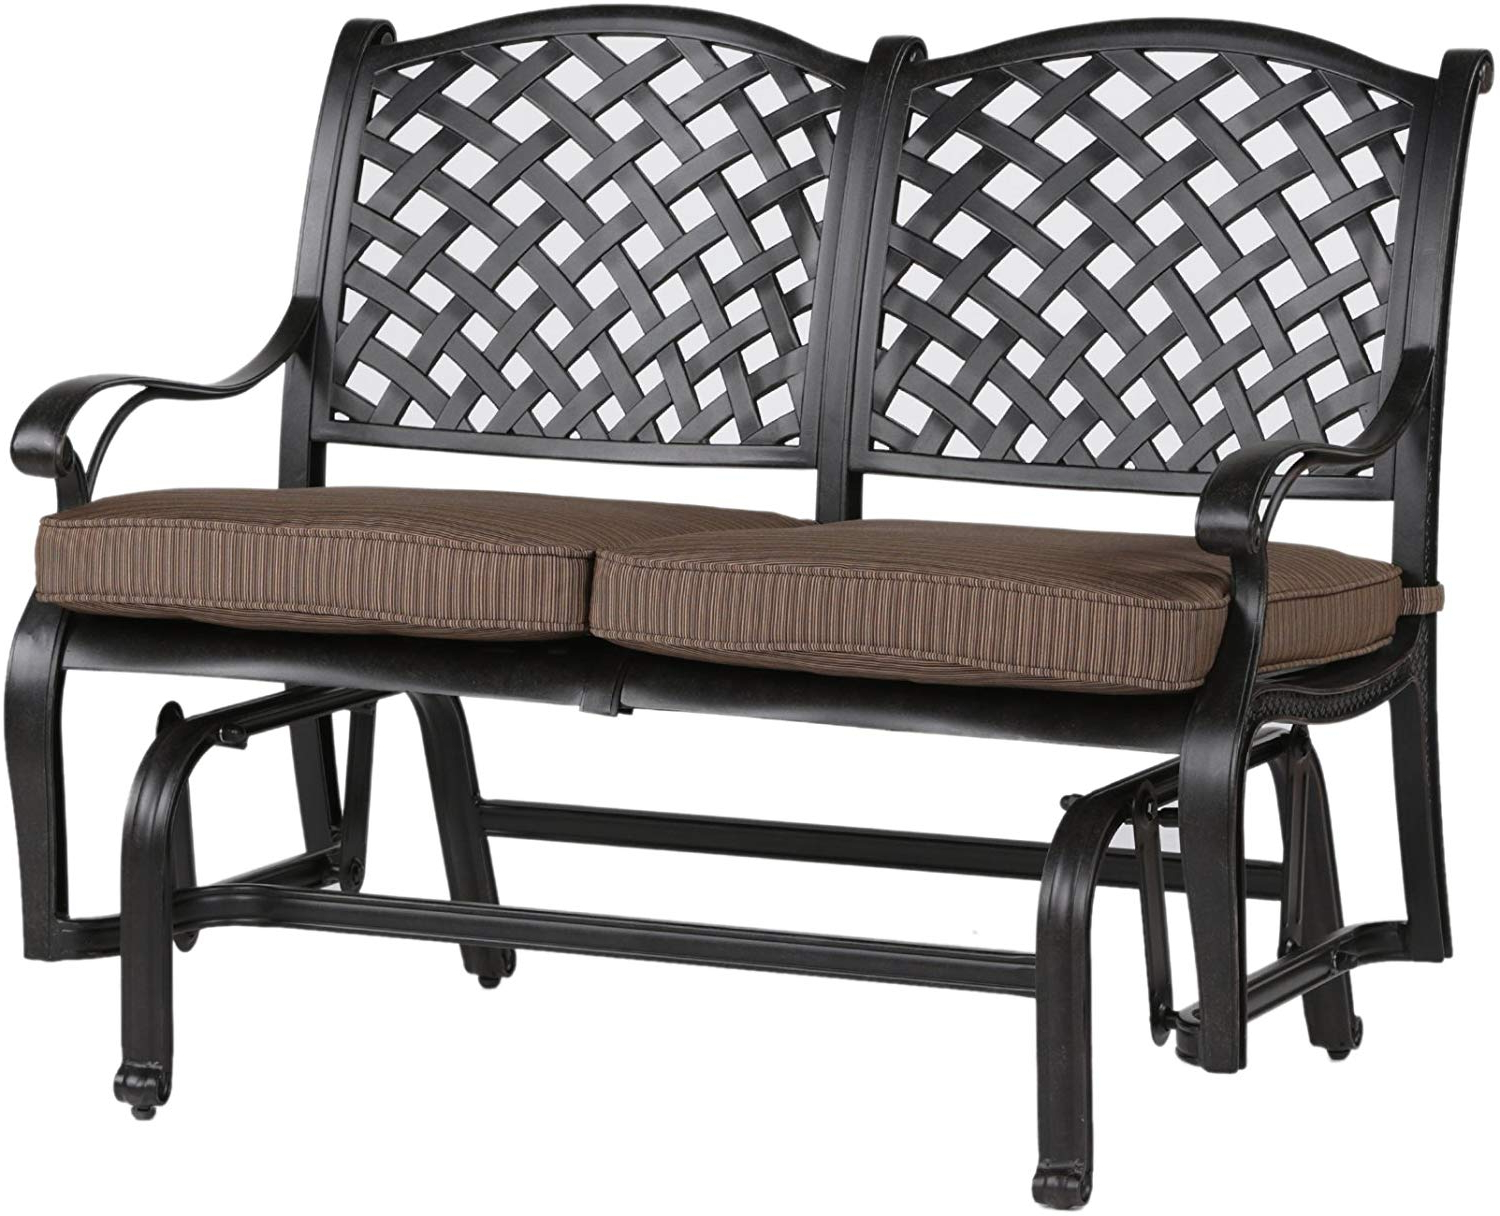 Ipatio Sparta Bench Glider With Cushion – Outdoor Metal Glider Throughout Widely Used Aluminum Glider Benches With Cushion (View 17 of 30)